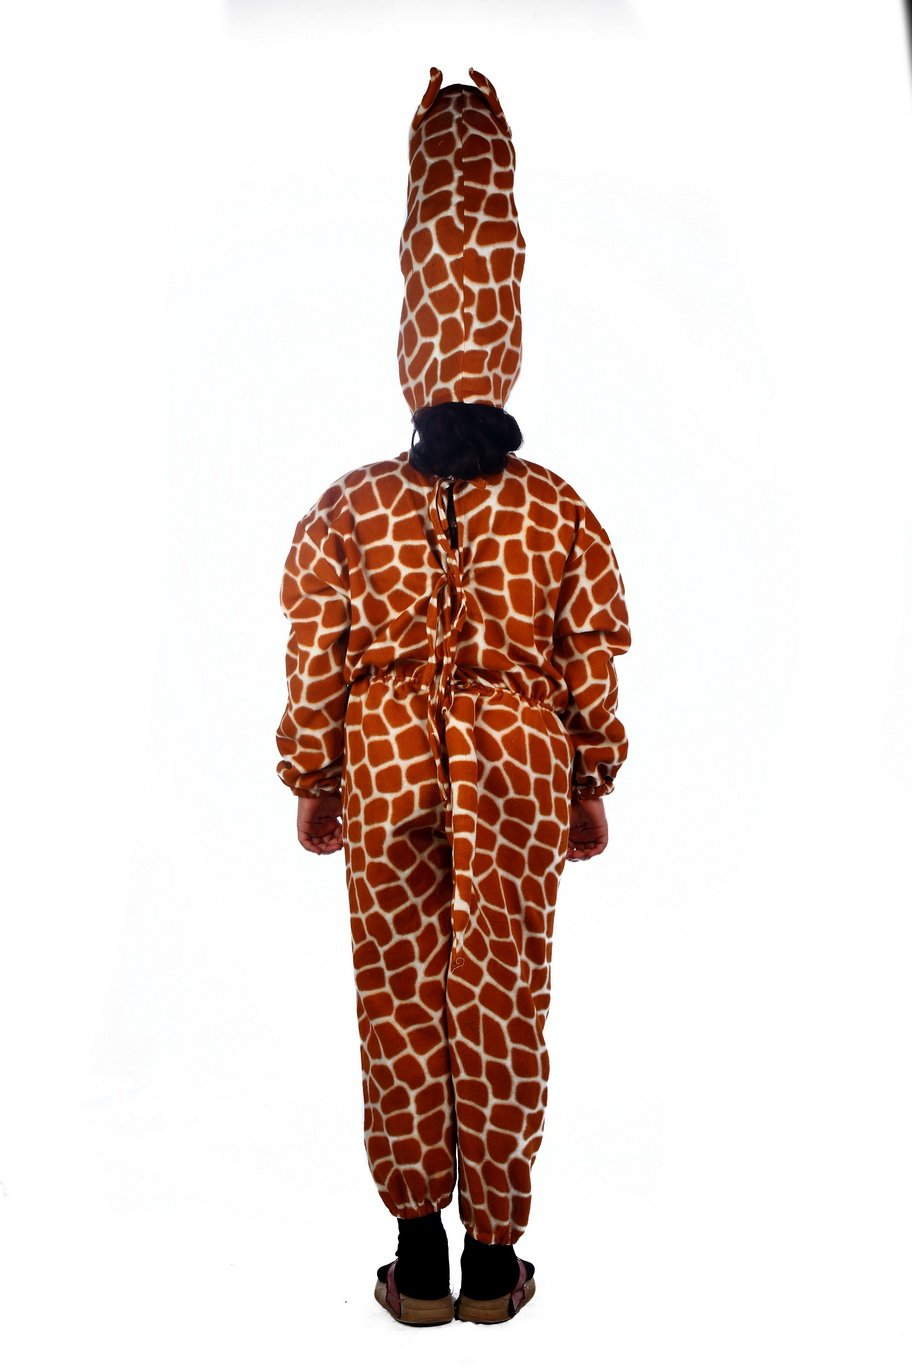 Wild Animal Giraffe costume